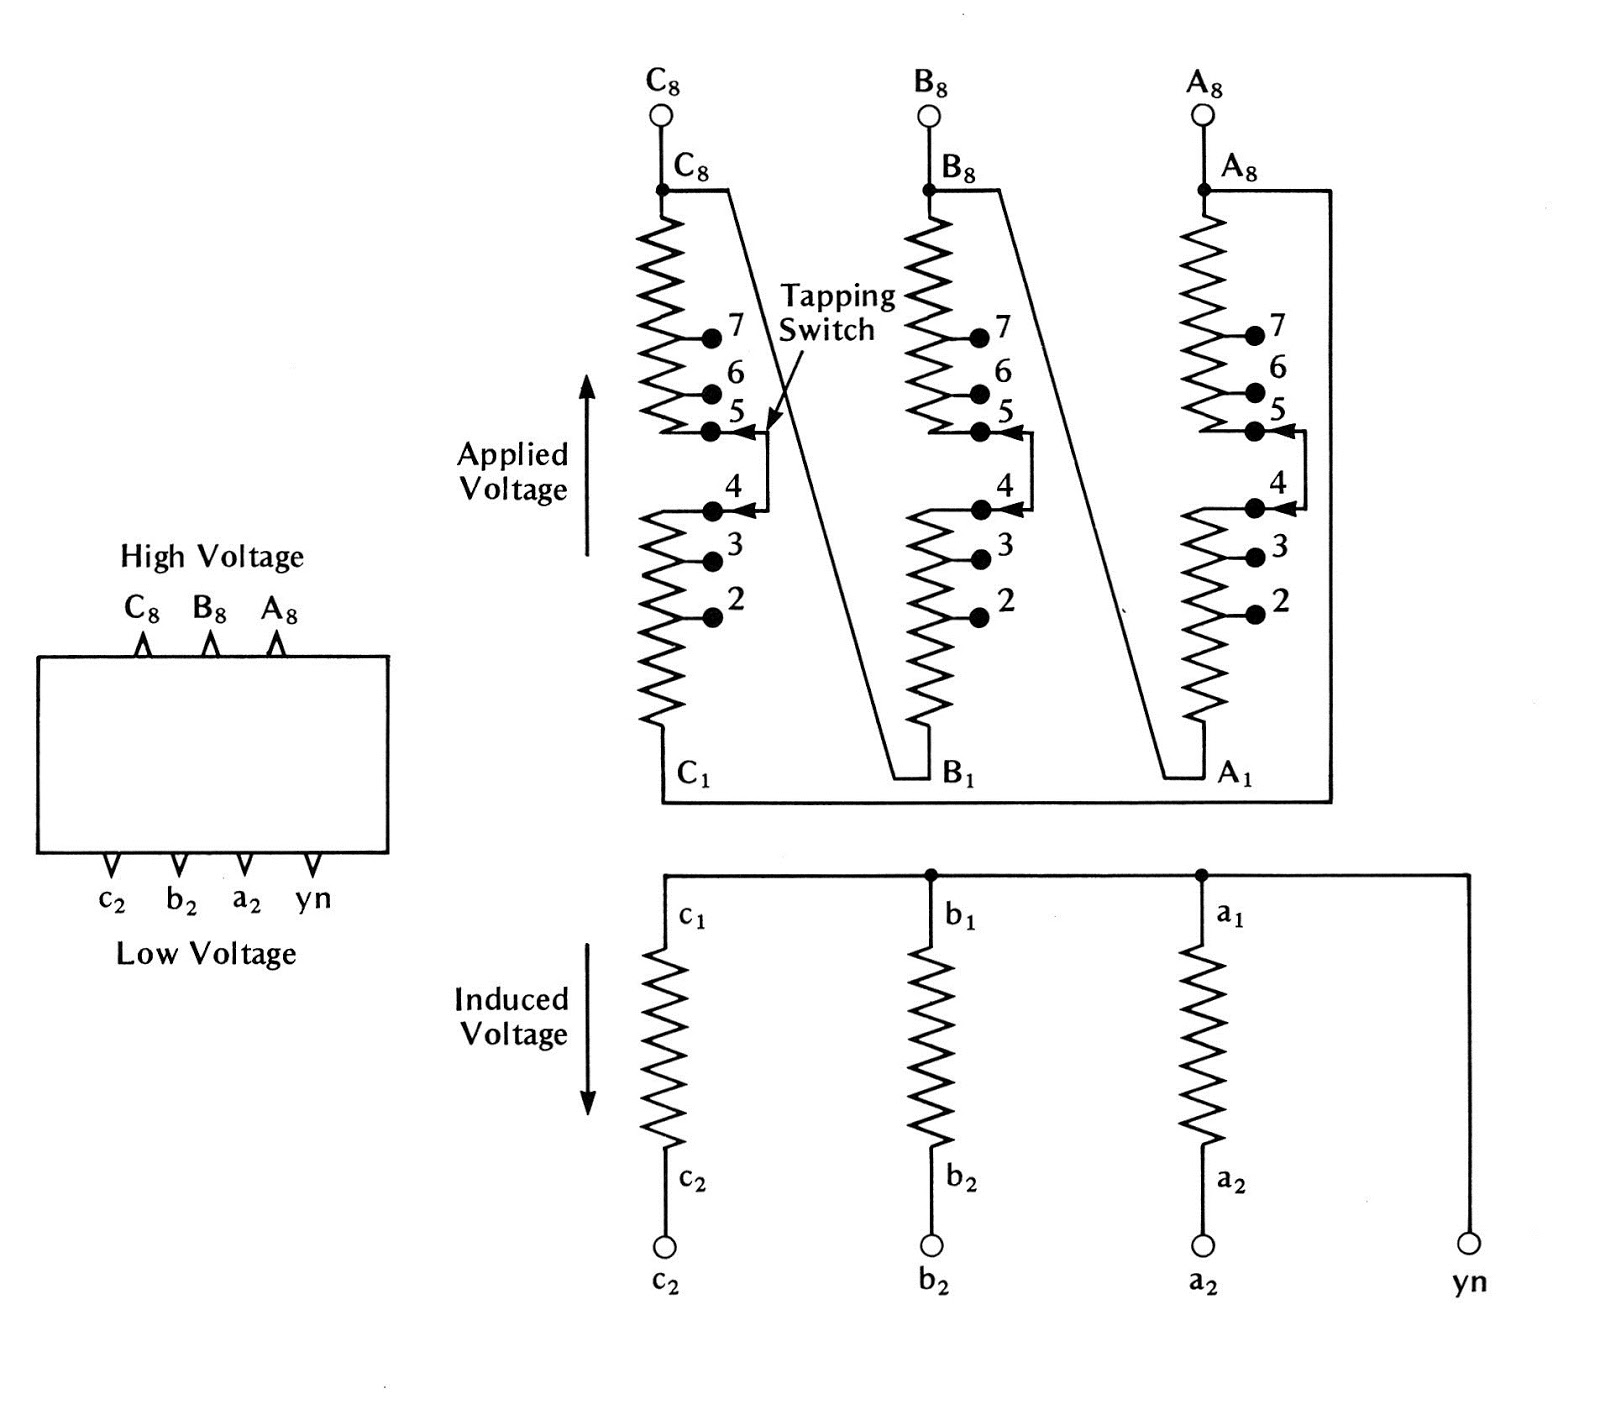 hight resolution of onan transformer wiring diagram wiring diagram transformer circuit diagram onan transformer wiring diagram wiring libraryfigure 1